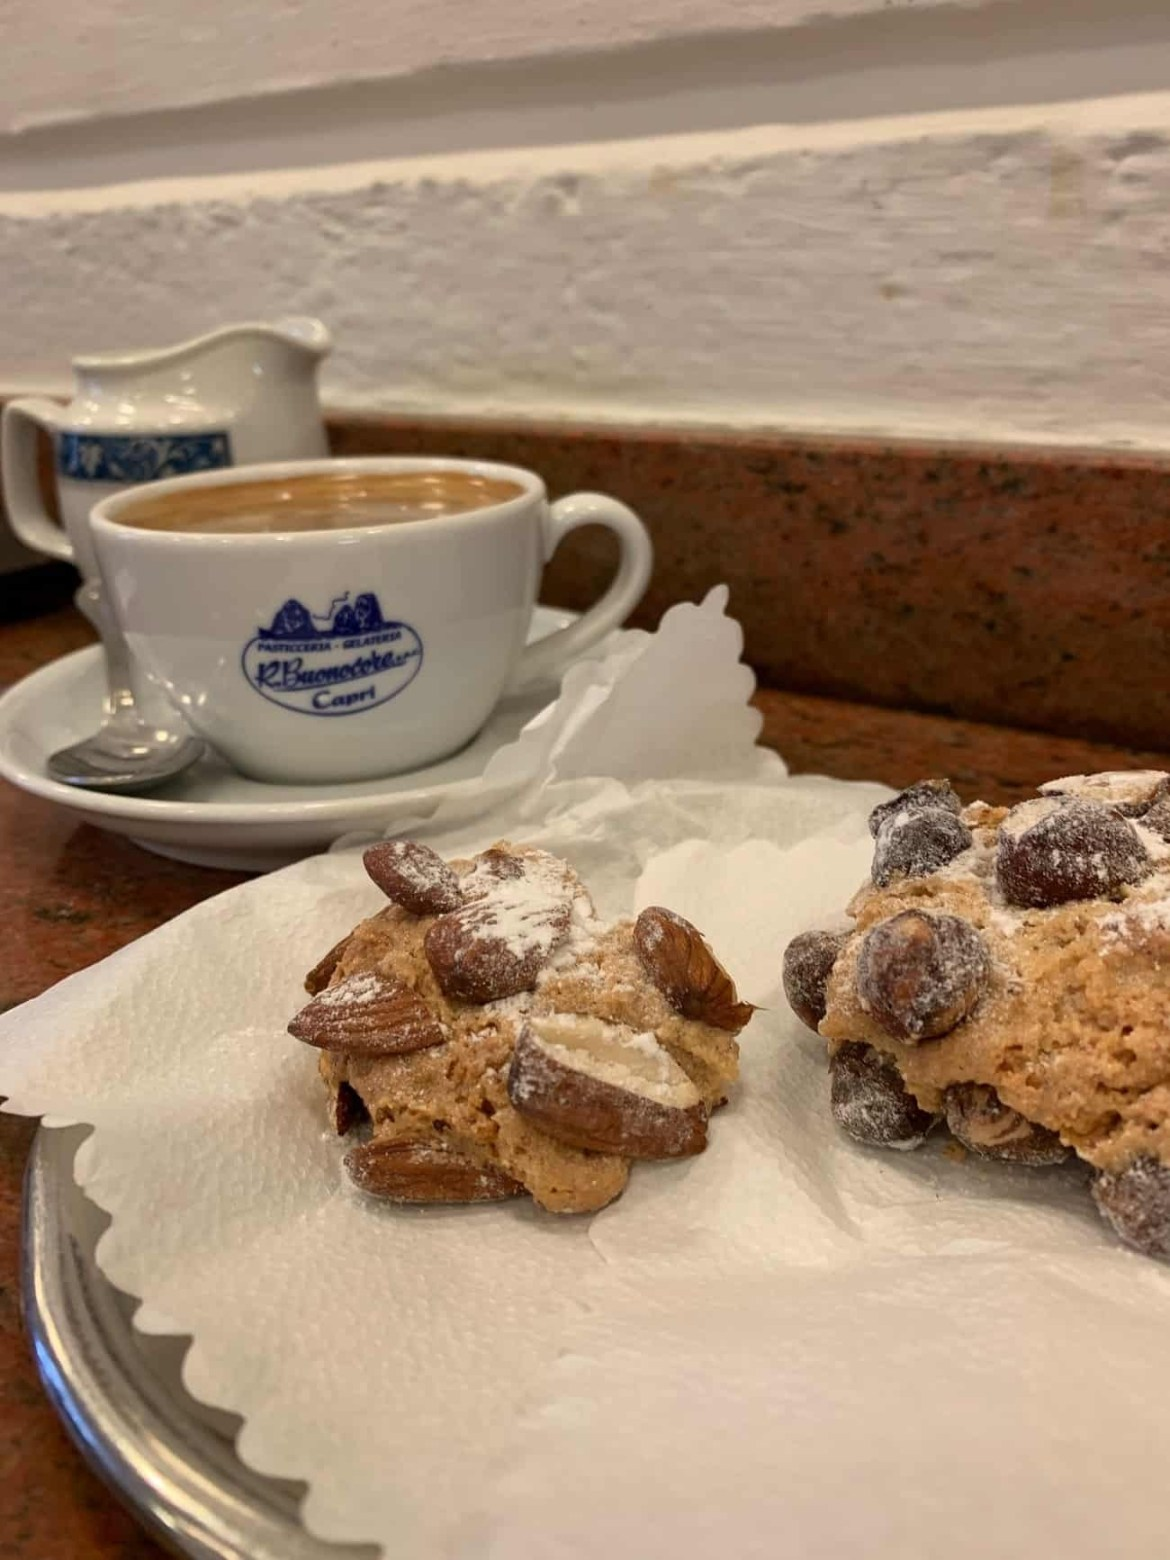 Coffee and biscuits at Buonocore Capri